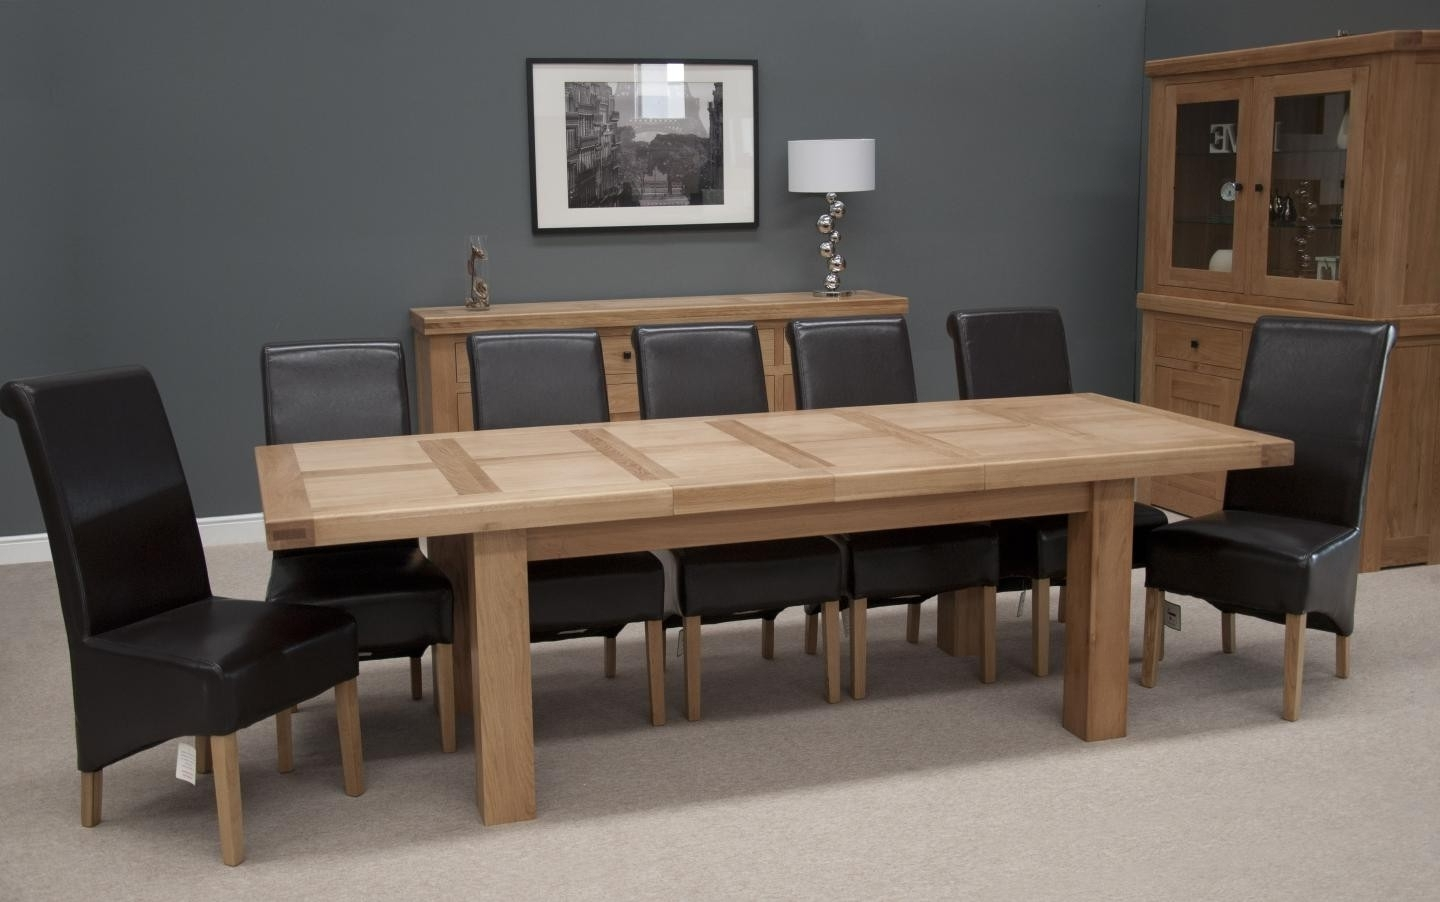 Recent Hippo Oak Large Dining Table (2 Leaf) 180Cm - 260Cm X 100Cm within 180Cm Dining Tables